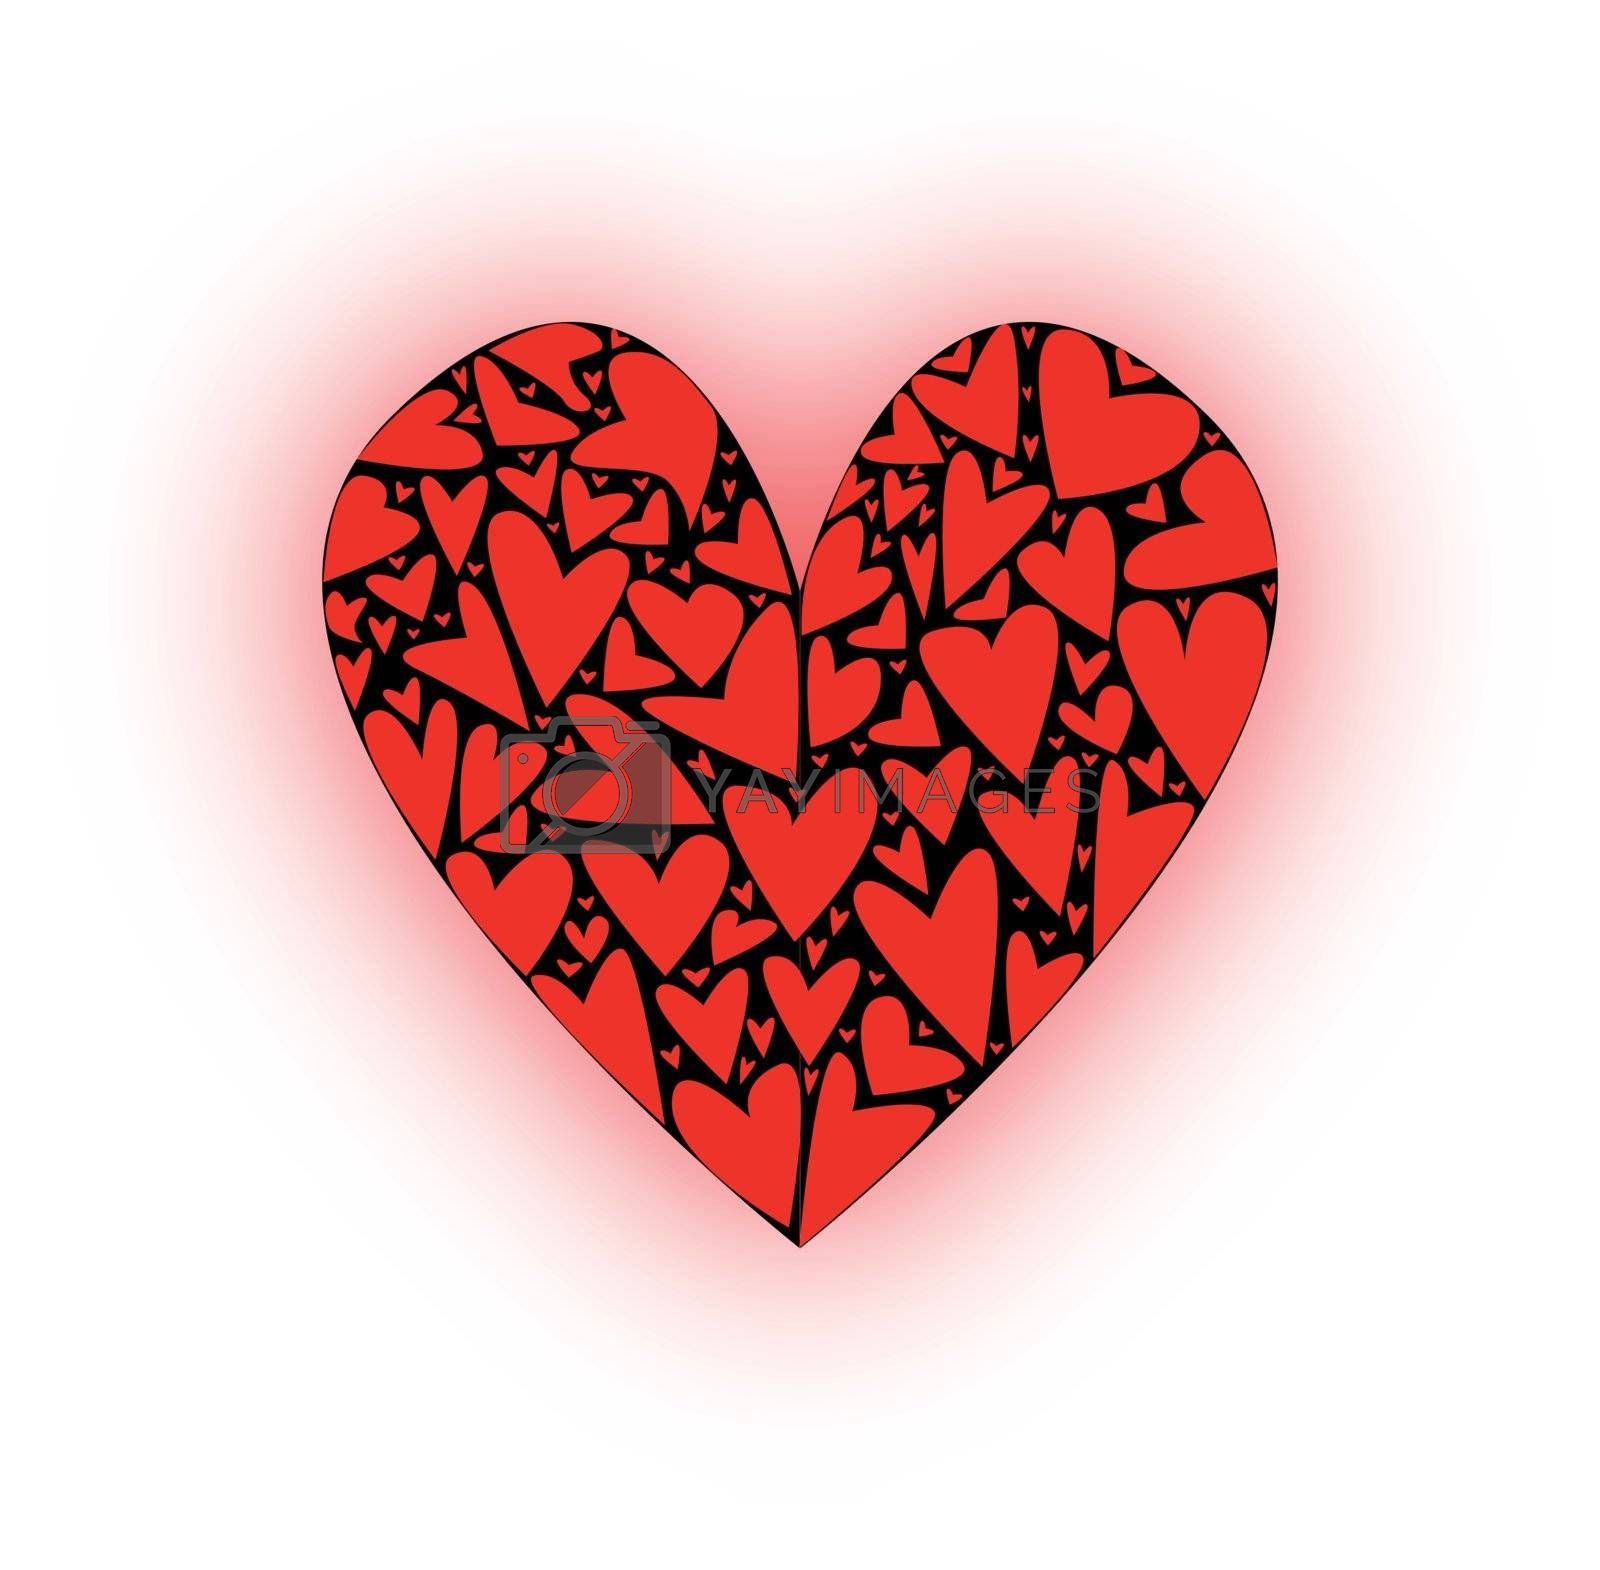 A large heart made up of several smaller hearts against a blacj background.